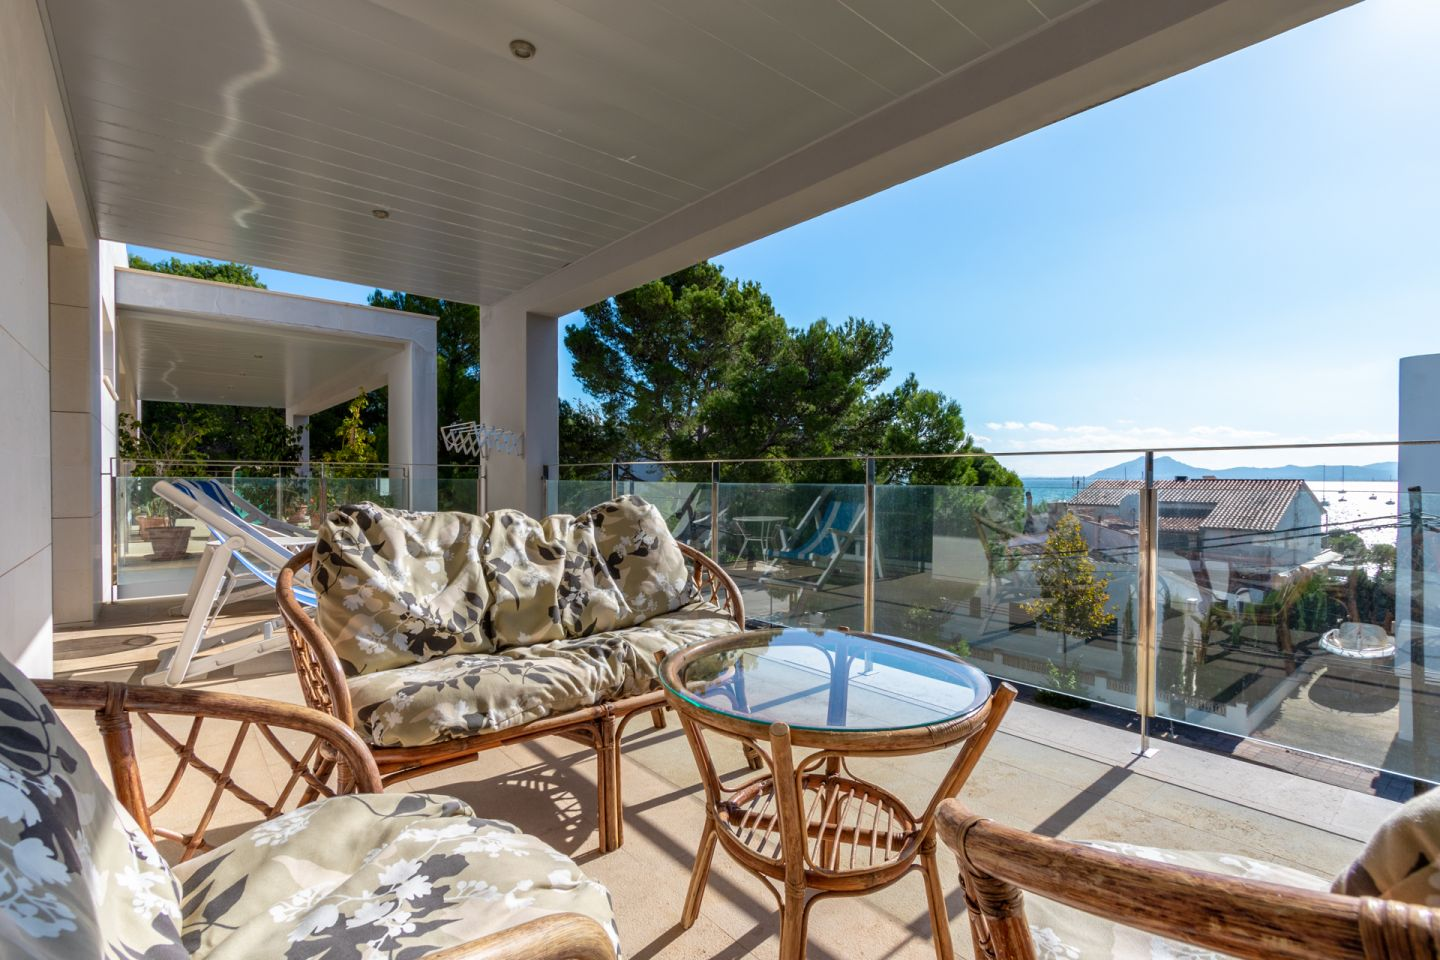 3 Bed Penthouse for sale in PUERTO POLLENSA 12